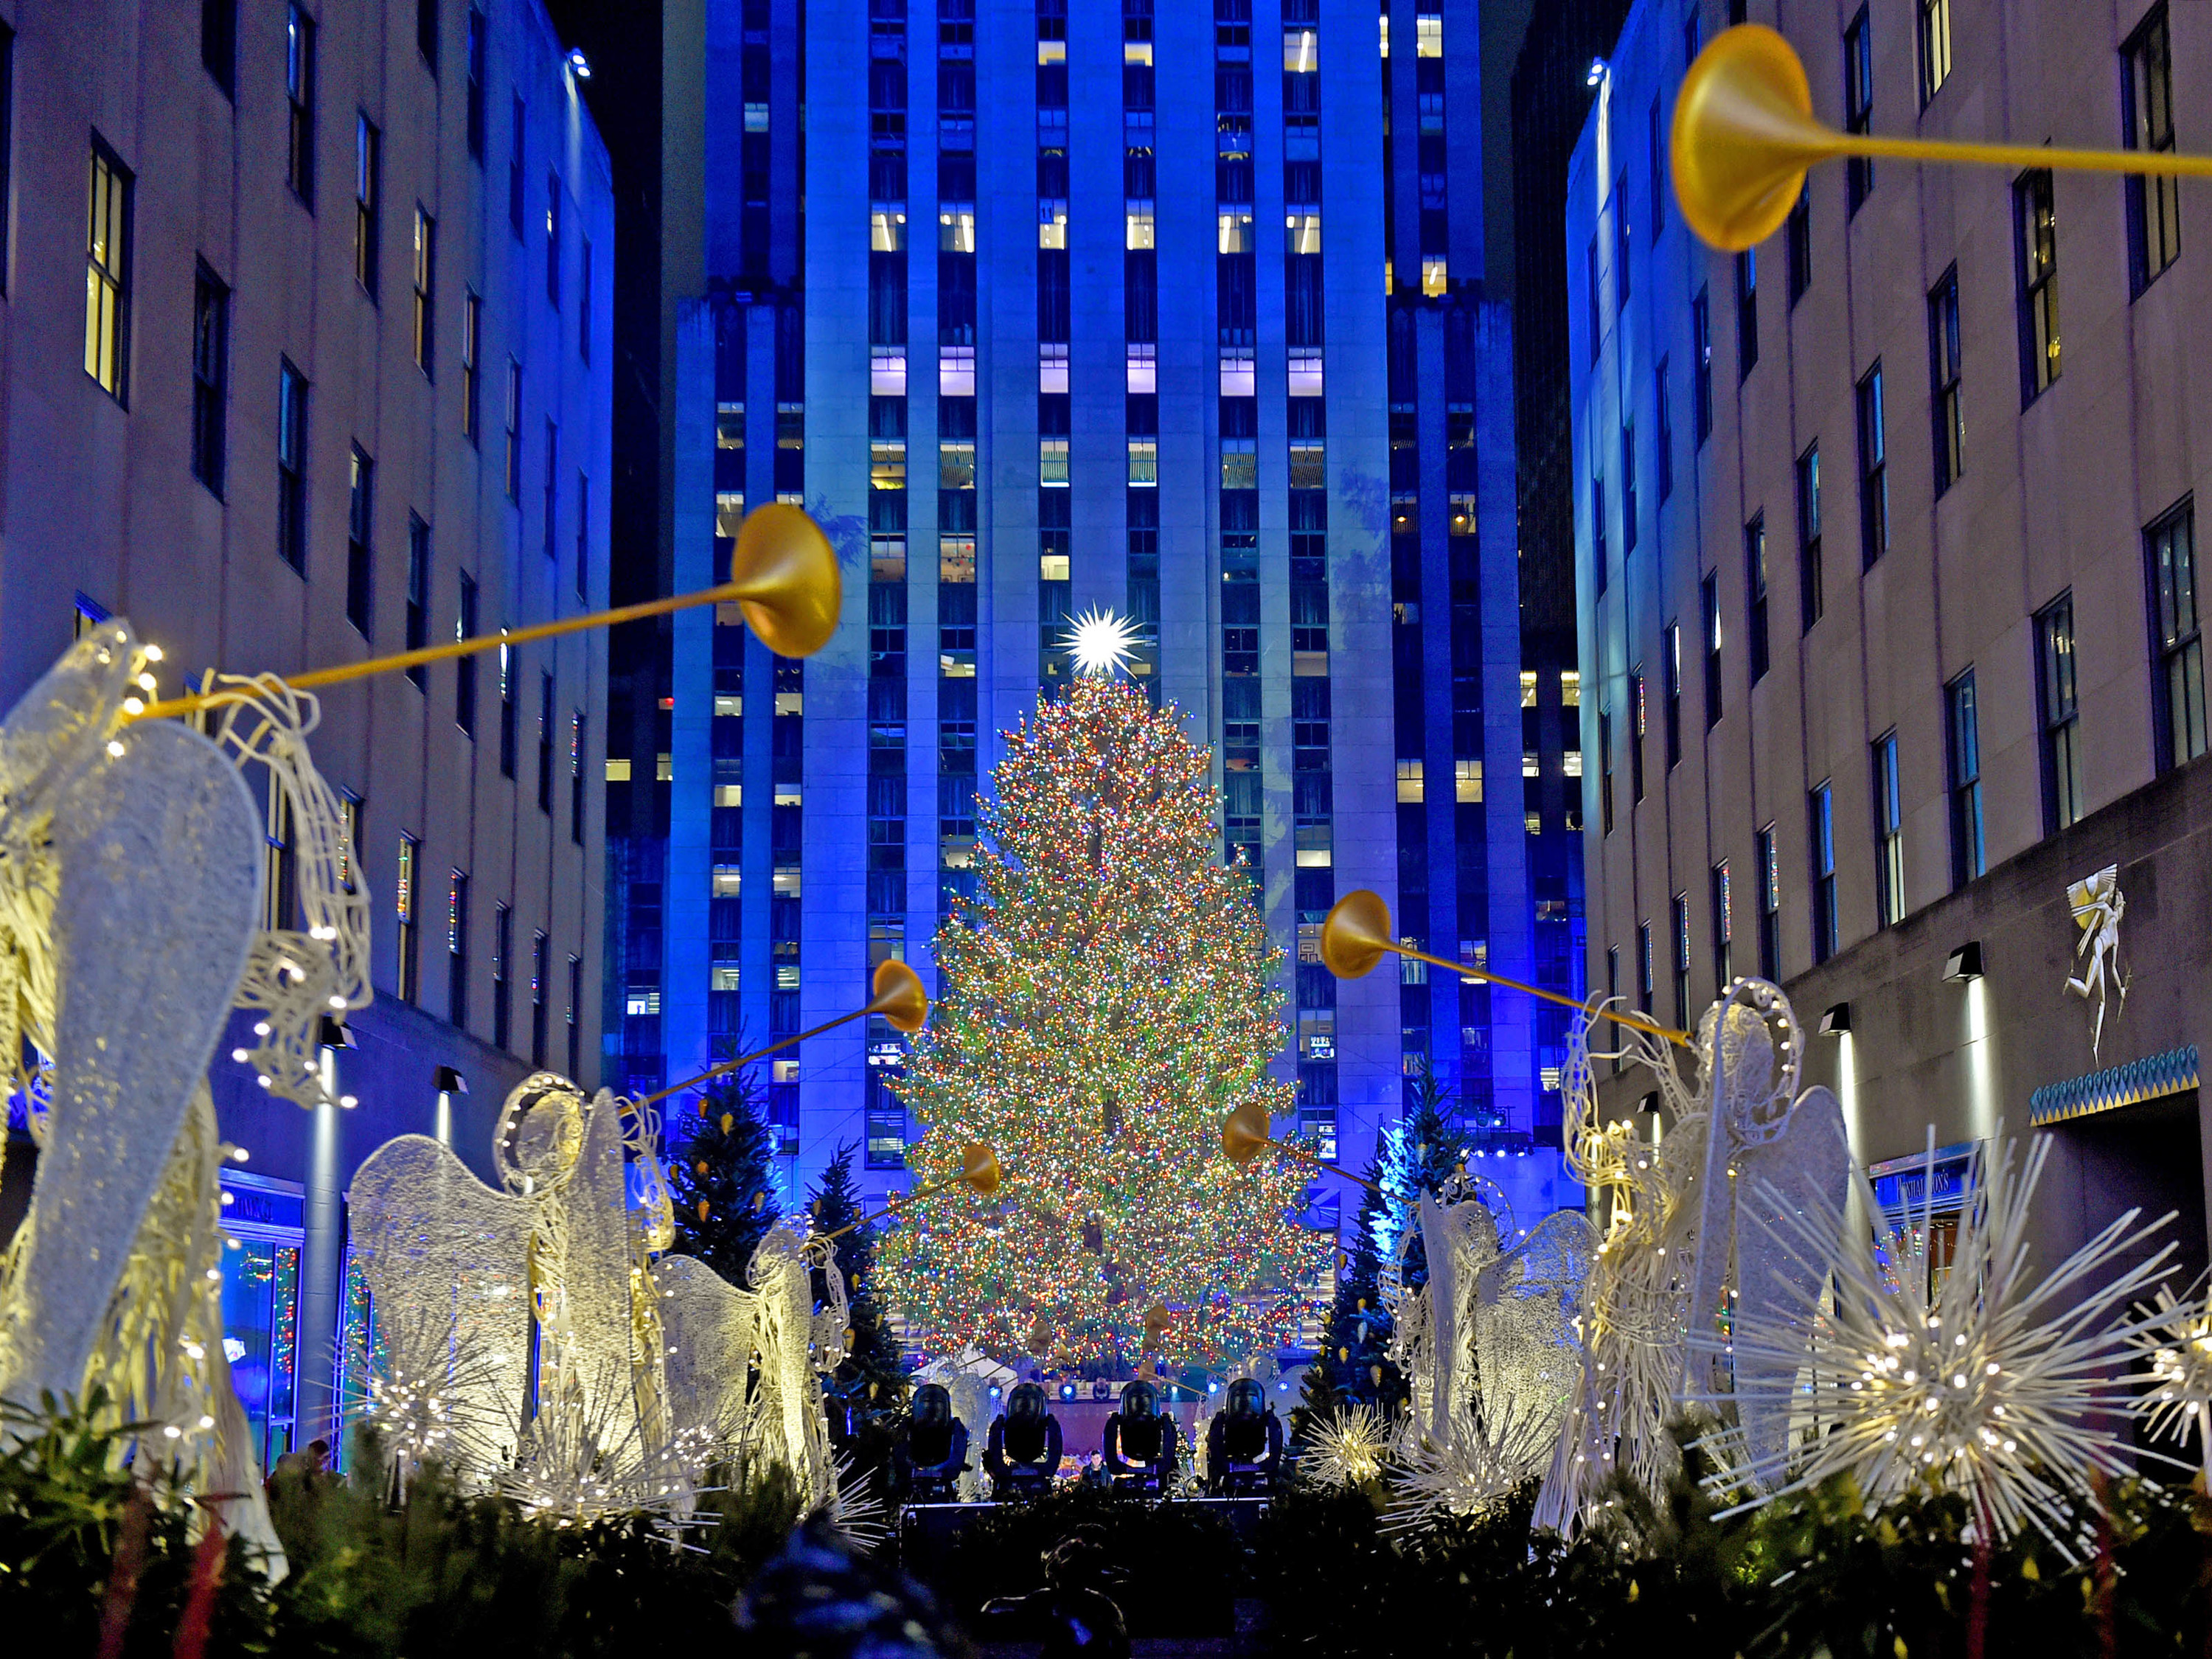 You must follow these rules to see the Rockefeller Center Christmas Tree this year